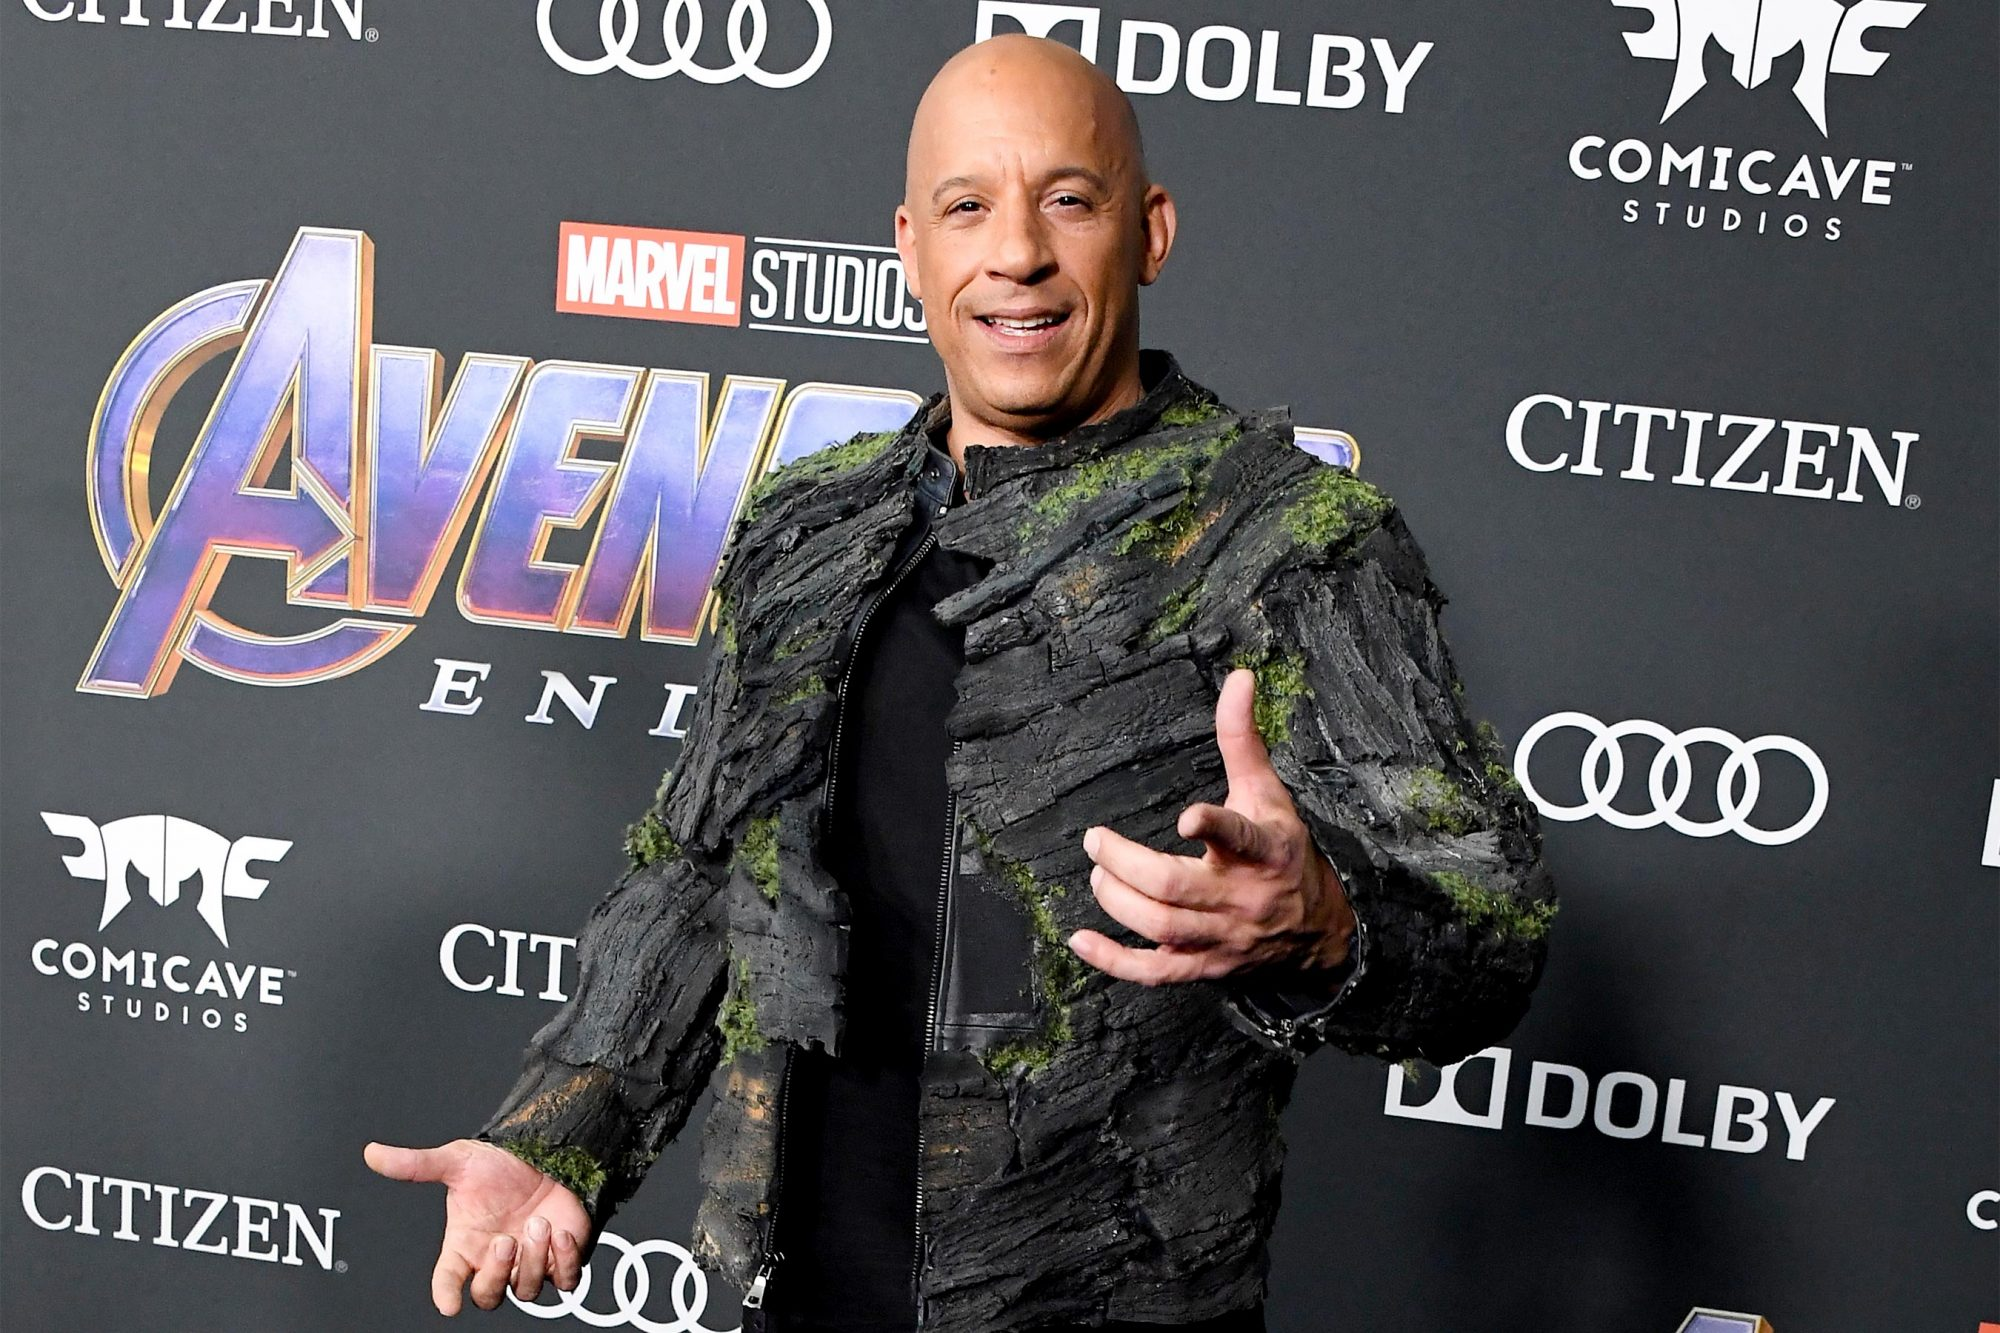 """LOS ANGELES, CA - APRIL 22: Vin Diesel attends the world premiere of Walt Disney Studios Motion Pictures """"Avengers: Endgame"""" at the Los Angeles Convention Center on April 22, 2019 in Los Angeles, California. (Photo by Steve Granitz/WireImage)"""